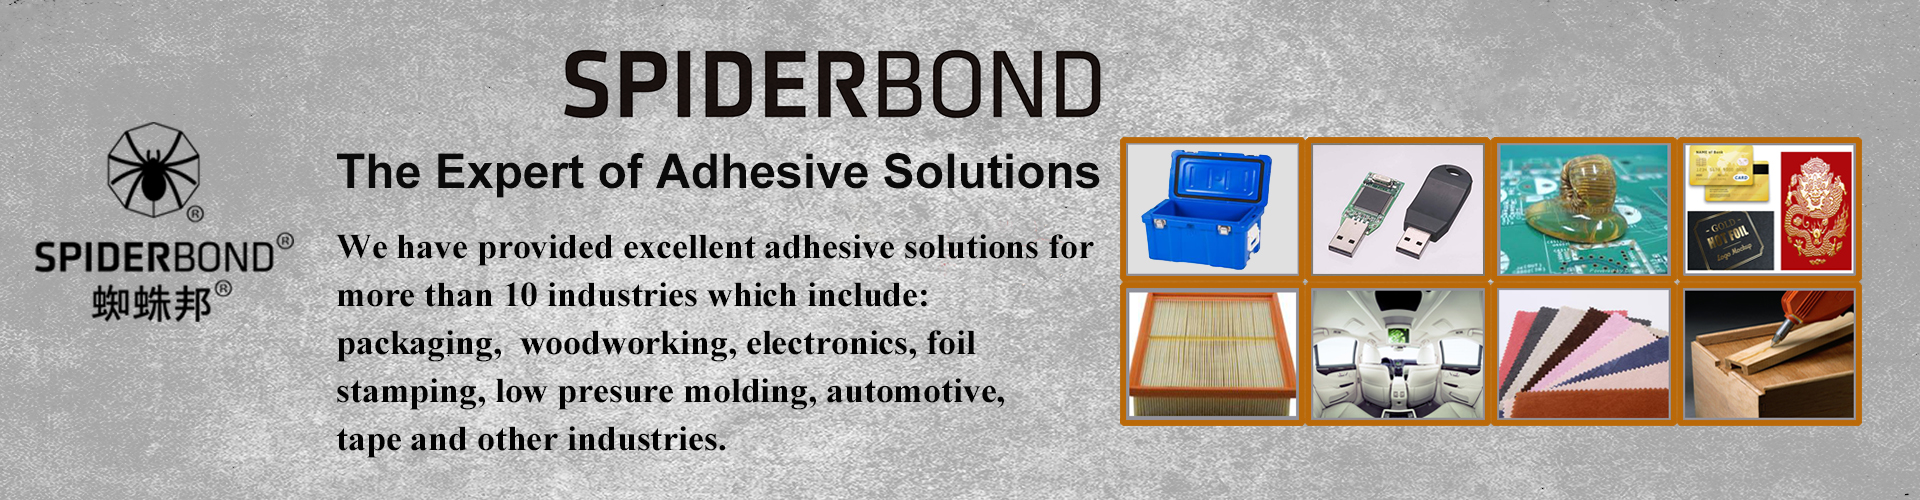 SPIDERBOND ADHESIVES Banner